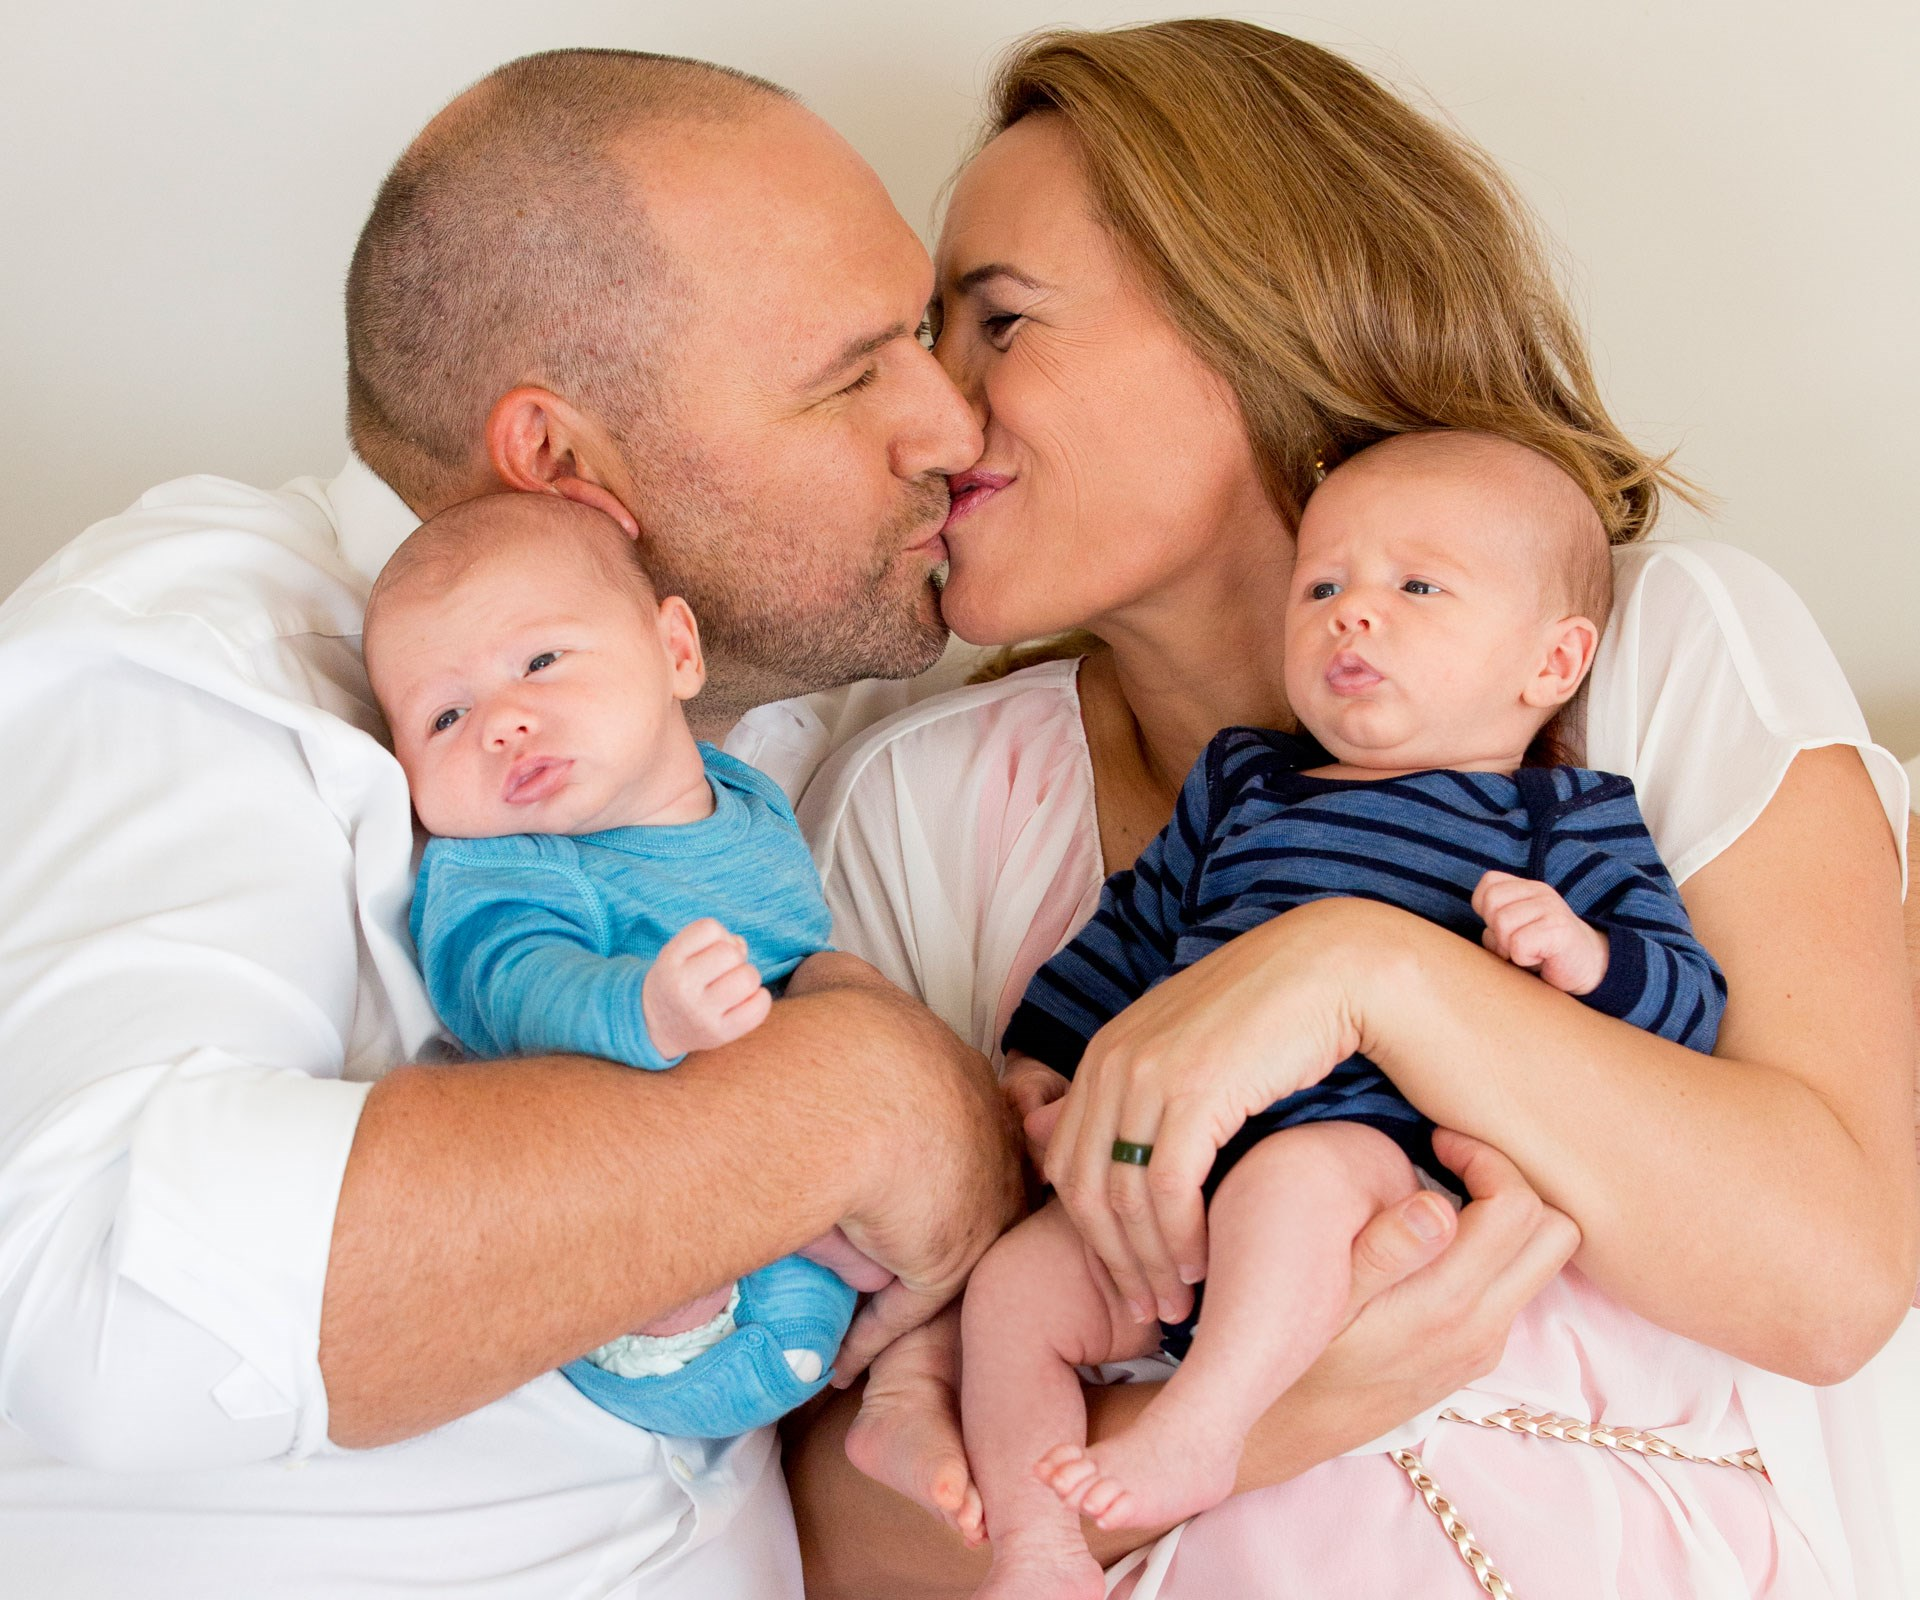 """**May 24, 2016** In March 2016, [Jenny-May gave birth](http://www.womensweekly.co.nz/latest/celebrity/inside-jenny-may-clarksons-baby-photo-album-19192